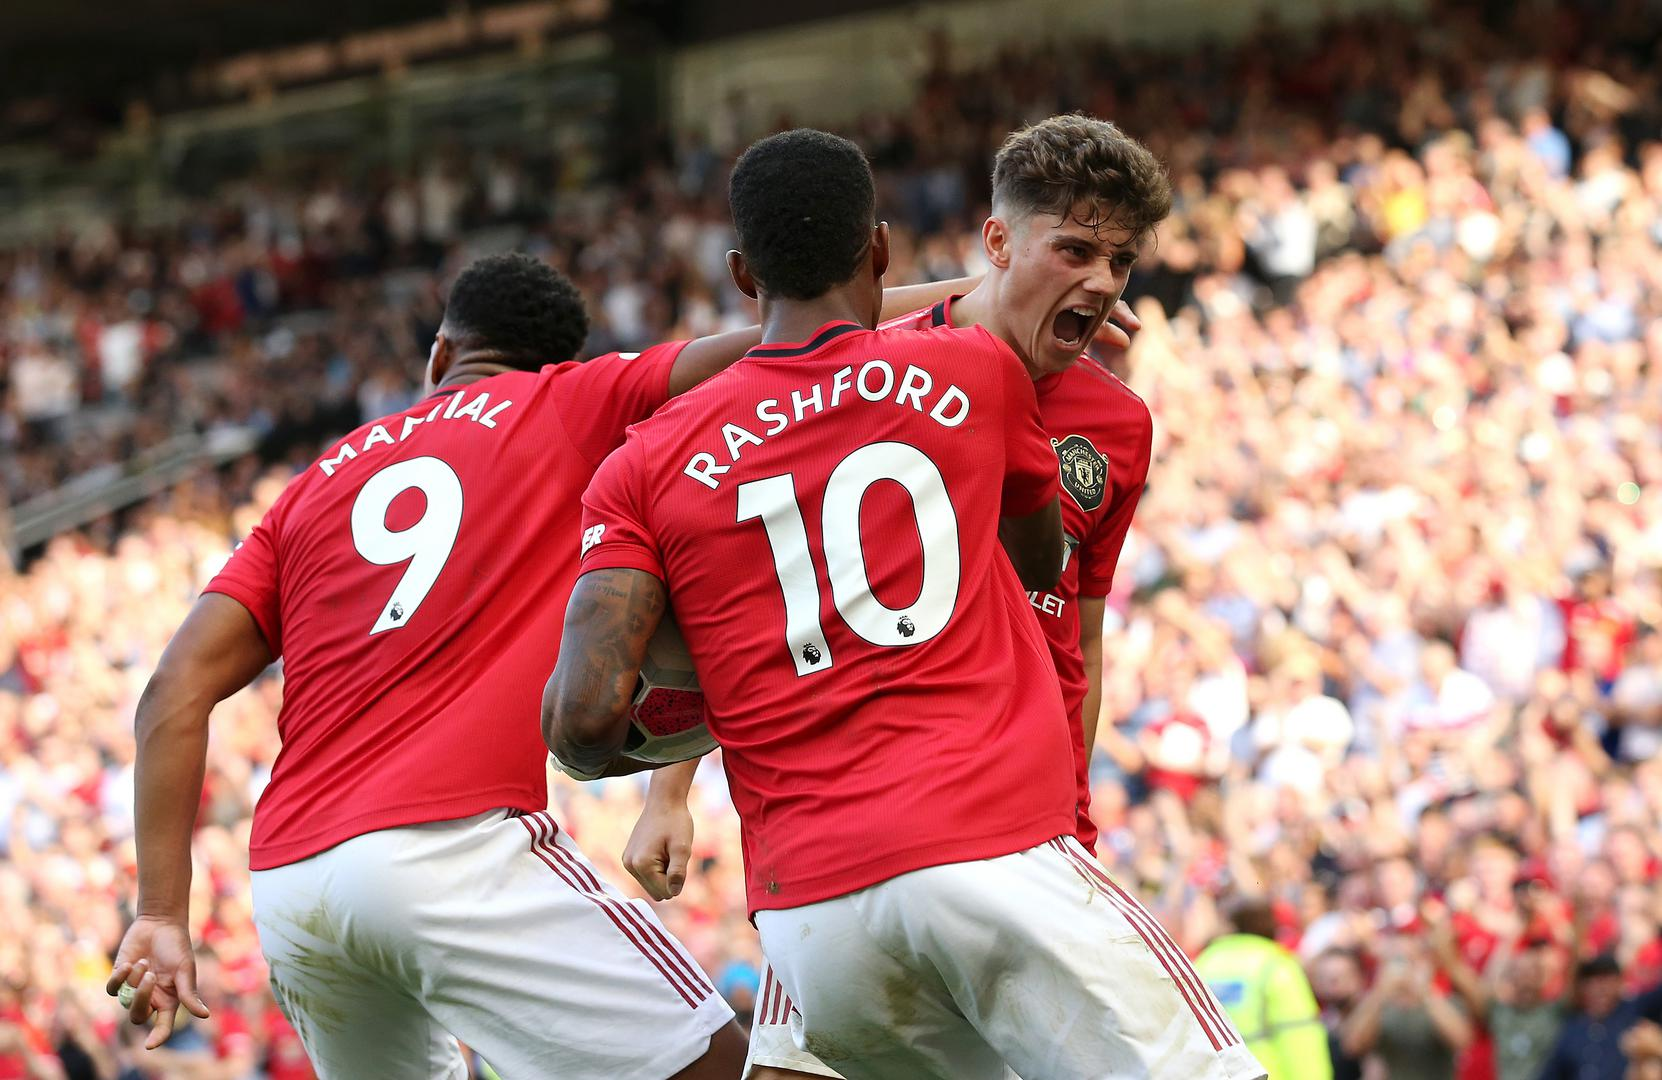 Anthony Martial, Marcus Rashford and Daniel James.